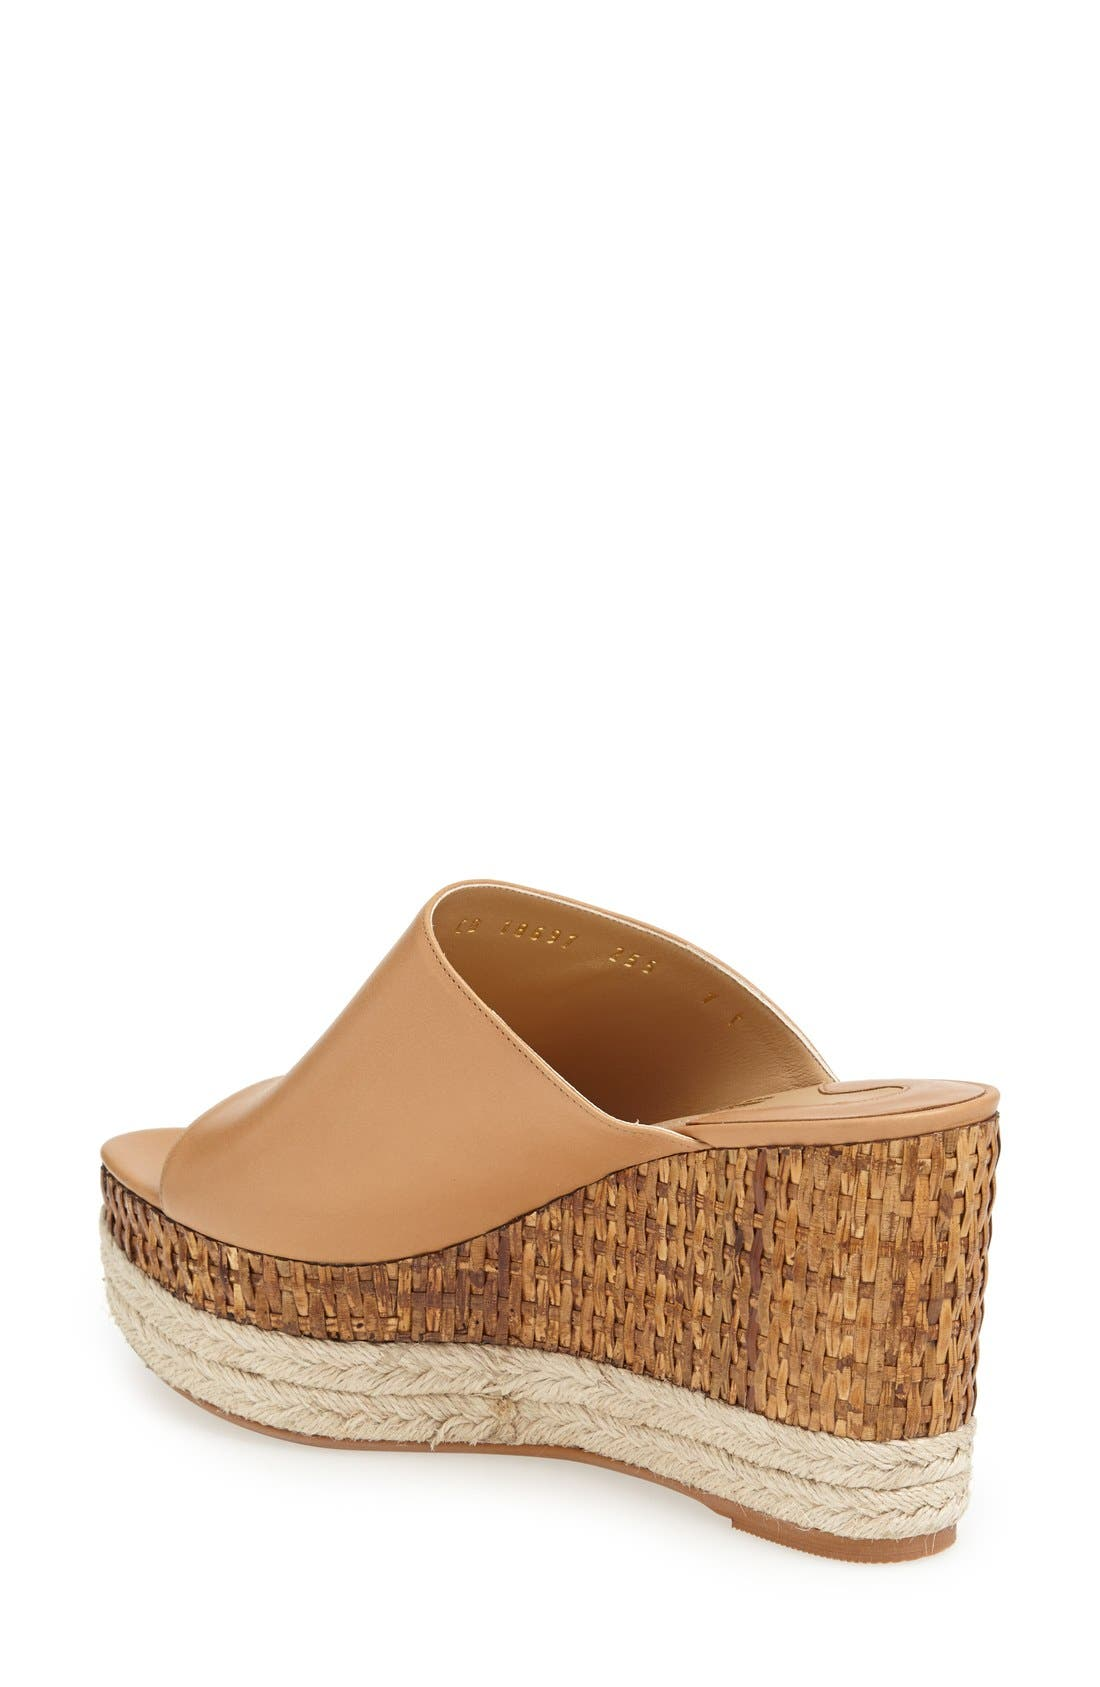 Alternate Image 2  - Salvatore Ferragamo 'Maimei' Wedge Sandal (Women)